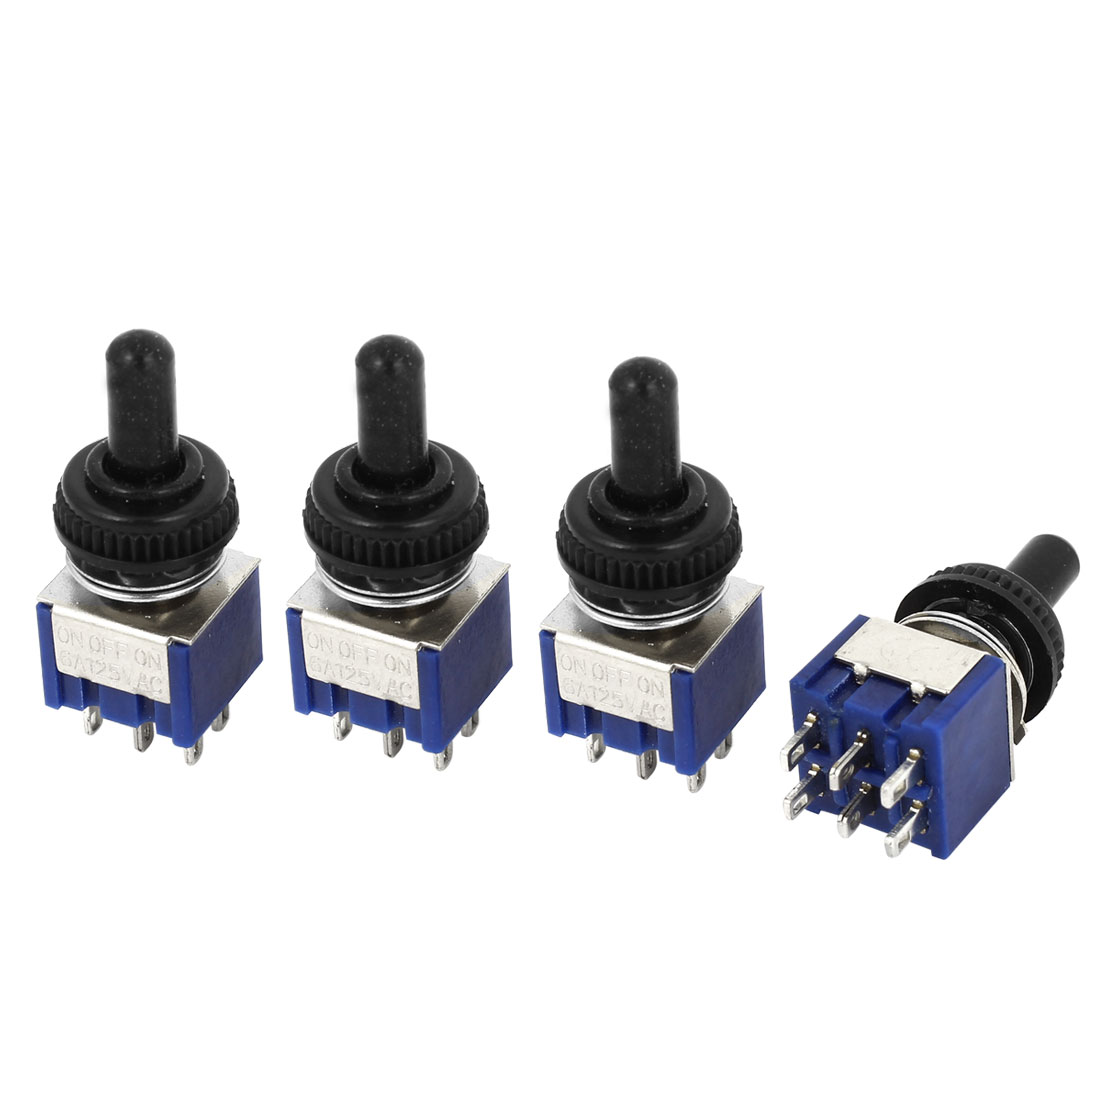 4pcs AC 125V 6A on/off/on DPDT 6 Pins 3 Position Toggle Switch w Waterproof Cover